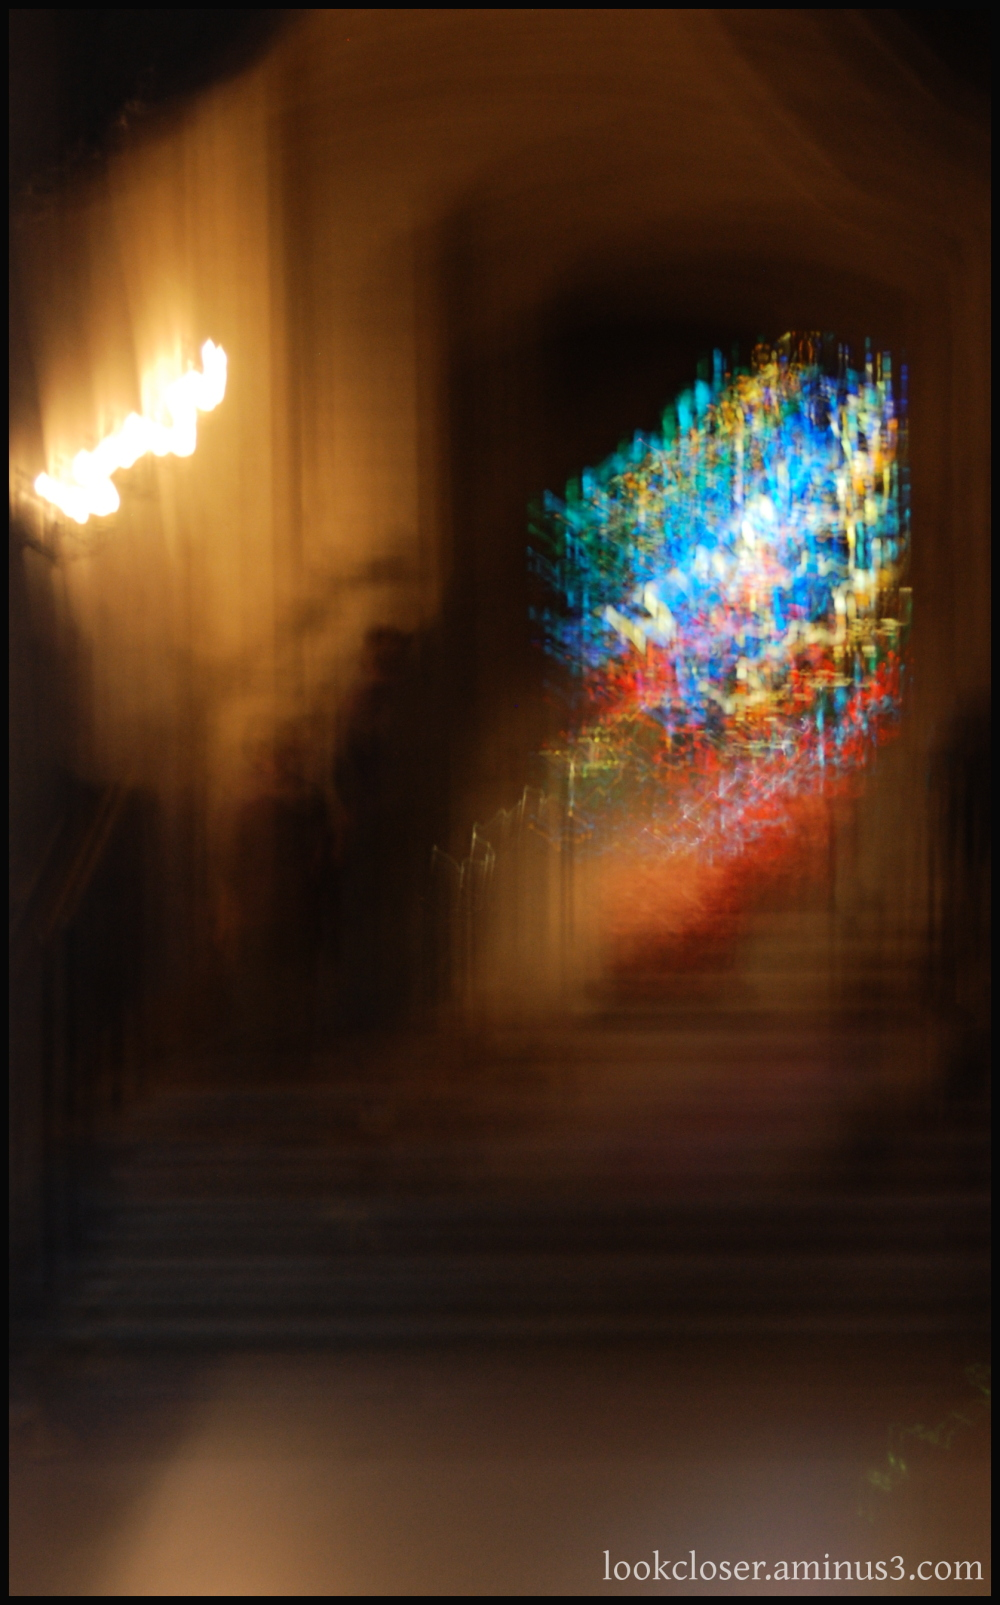 SF stained glass blur